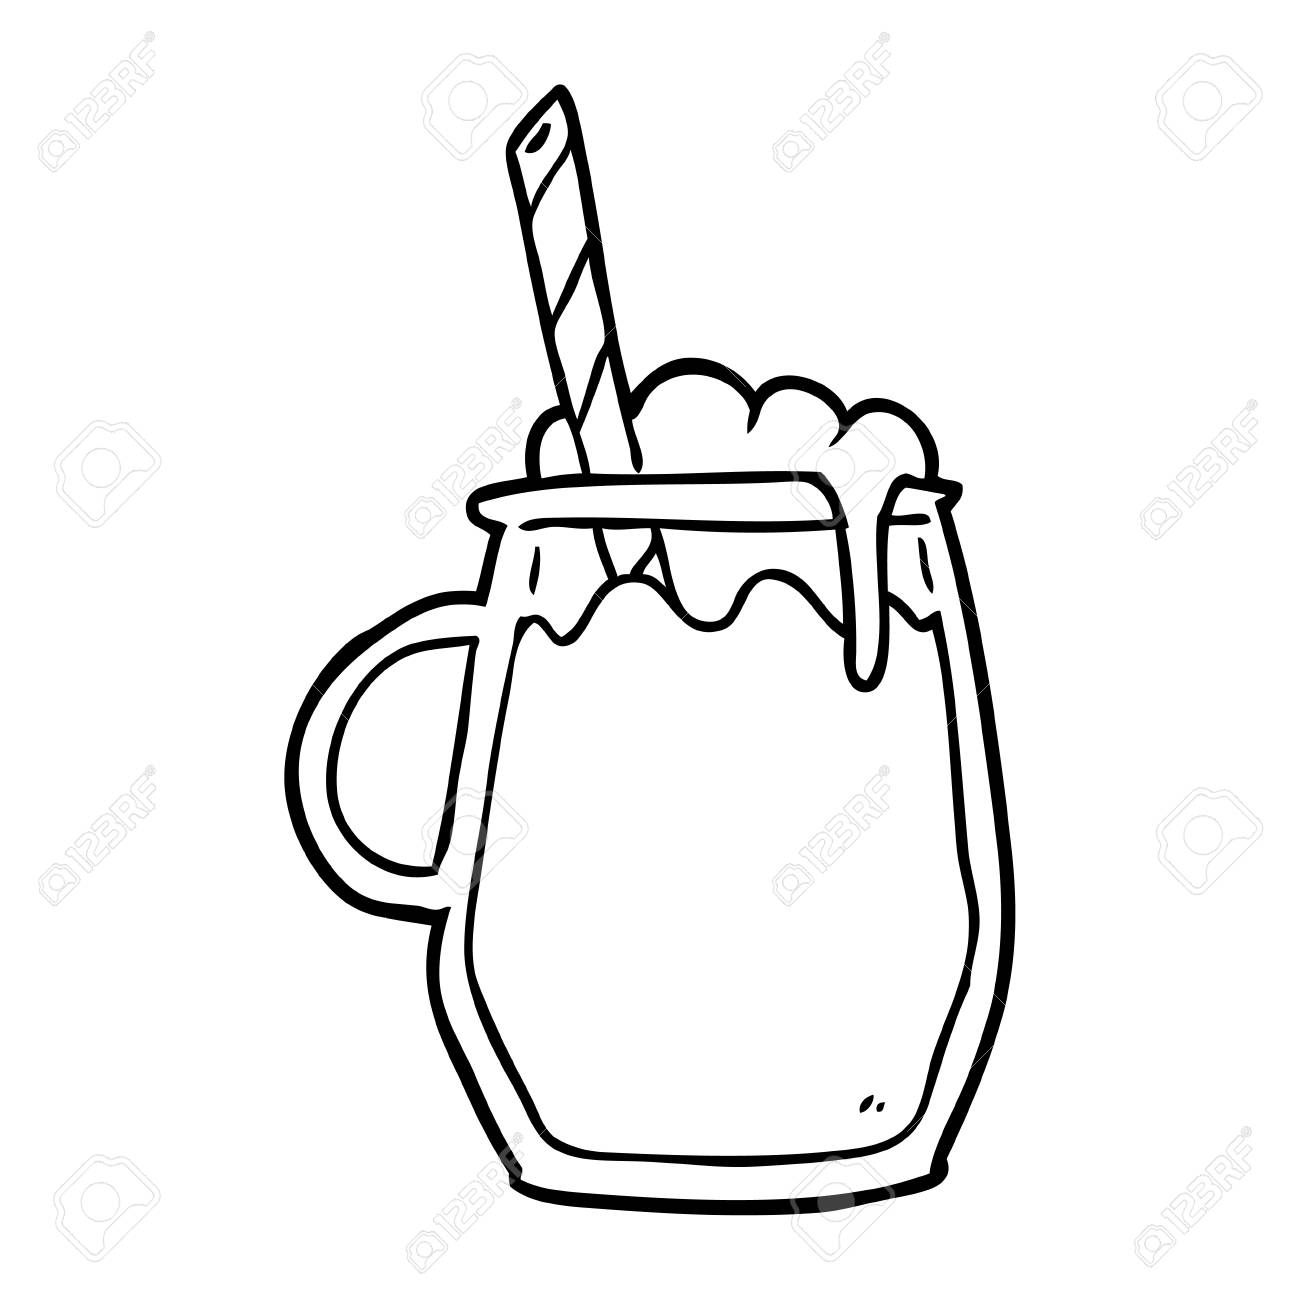 line drawing of a glass of root beer with straw royalty free rh 123rf com root beer float clip art black and white root beer float clipart png